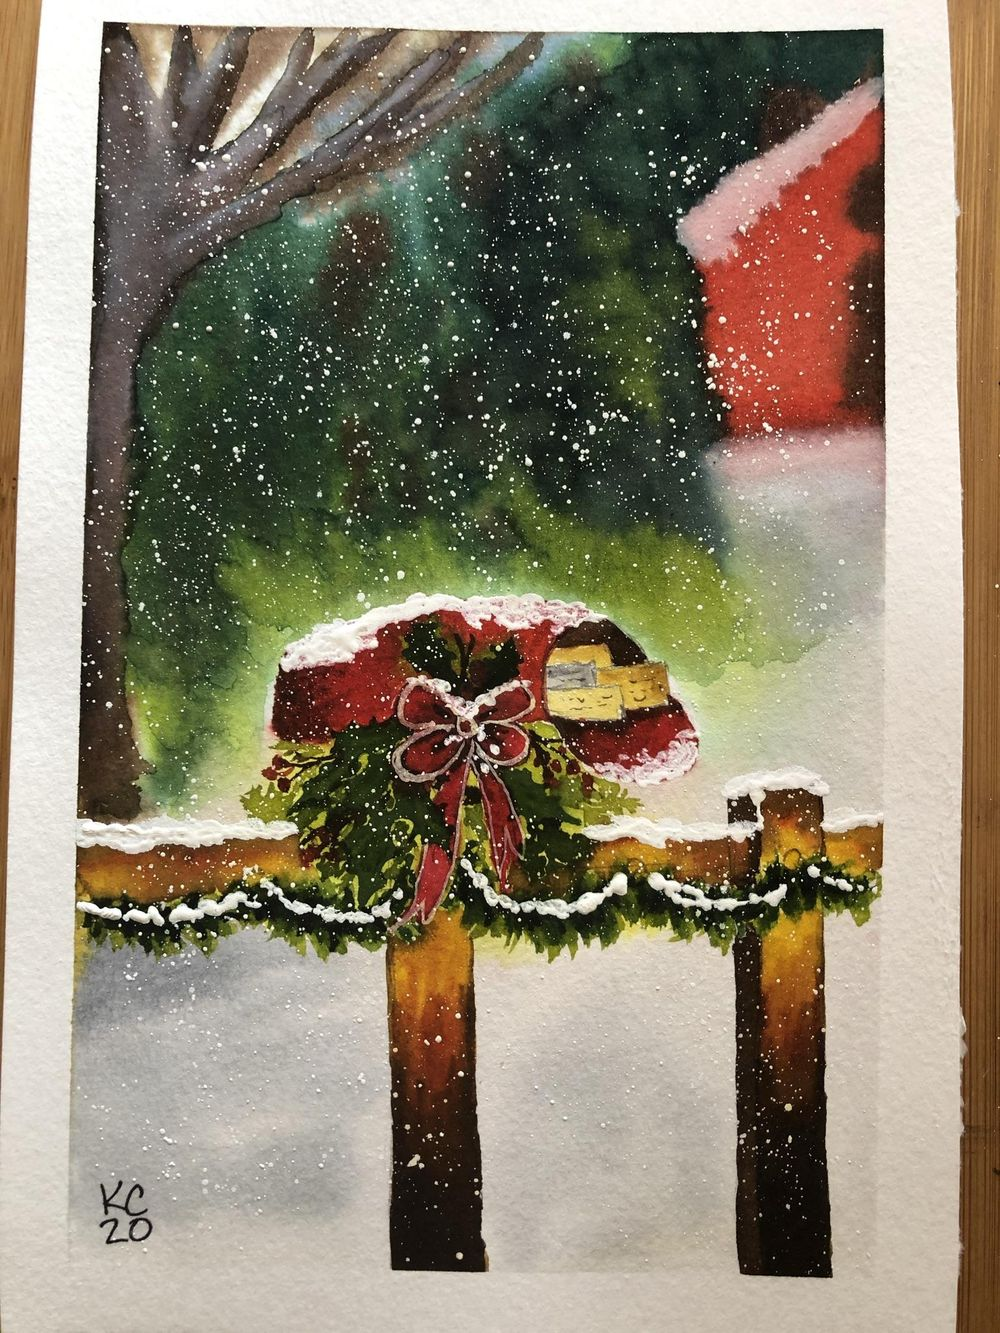 Countdown to Christmas - image 4 - student project